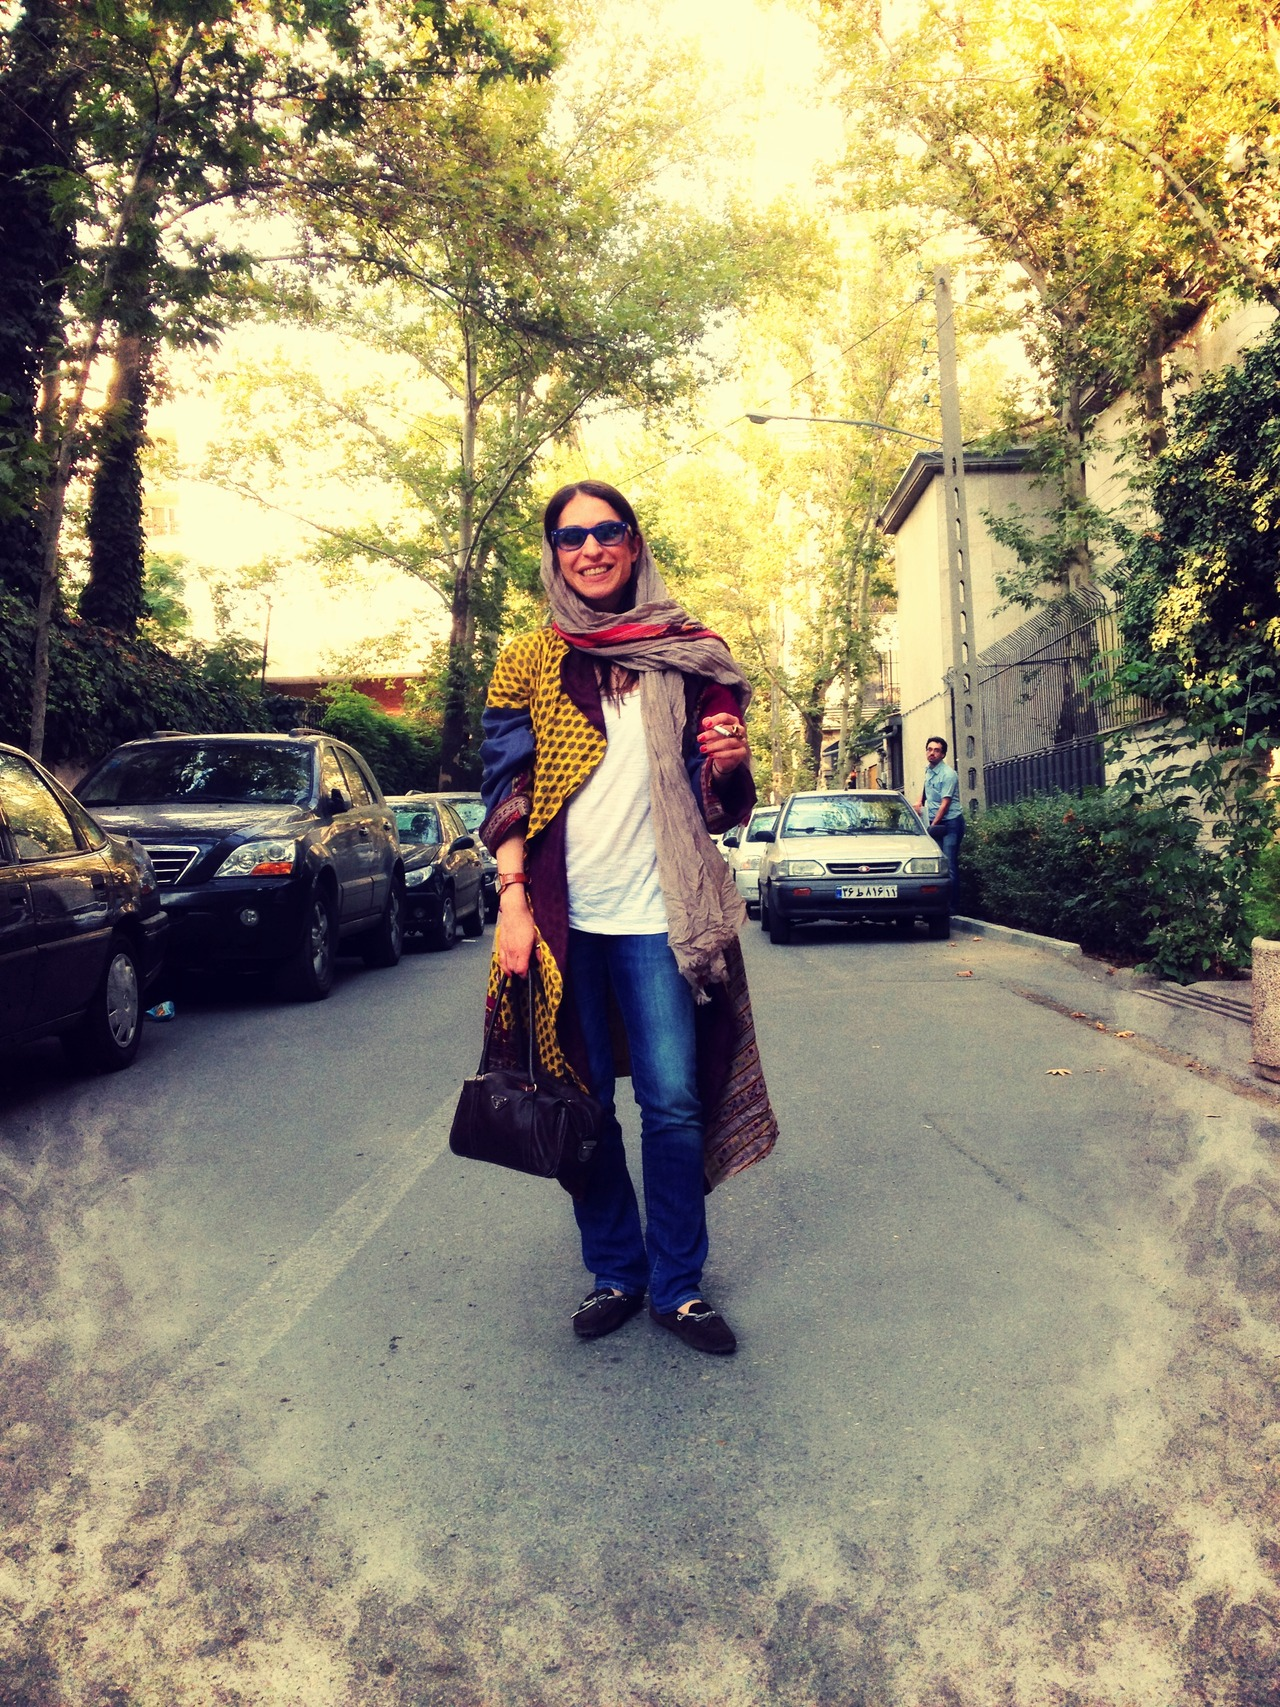 Fashion Accessories: Mideast Iran Women's Veil- In this Tuesday, May 24, 2011, female Iranian textile and fashion designer Marjaneh Abbasi, left